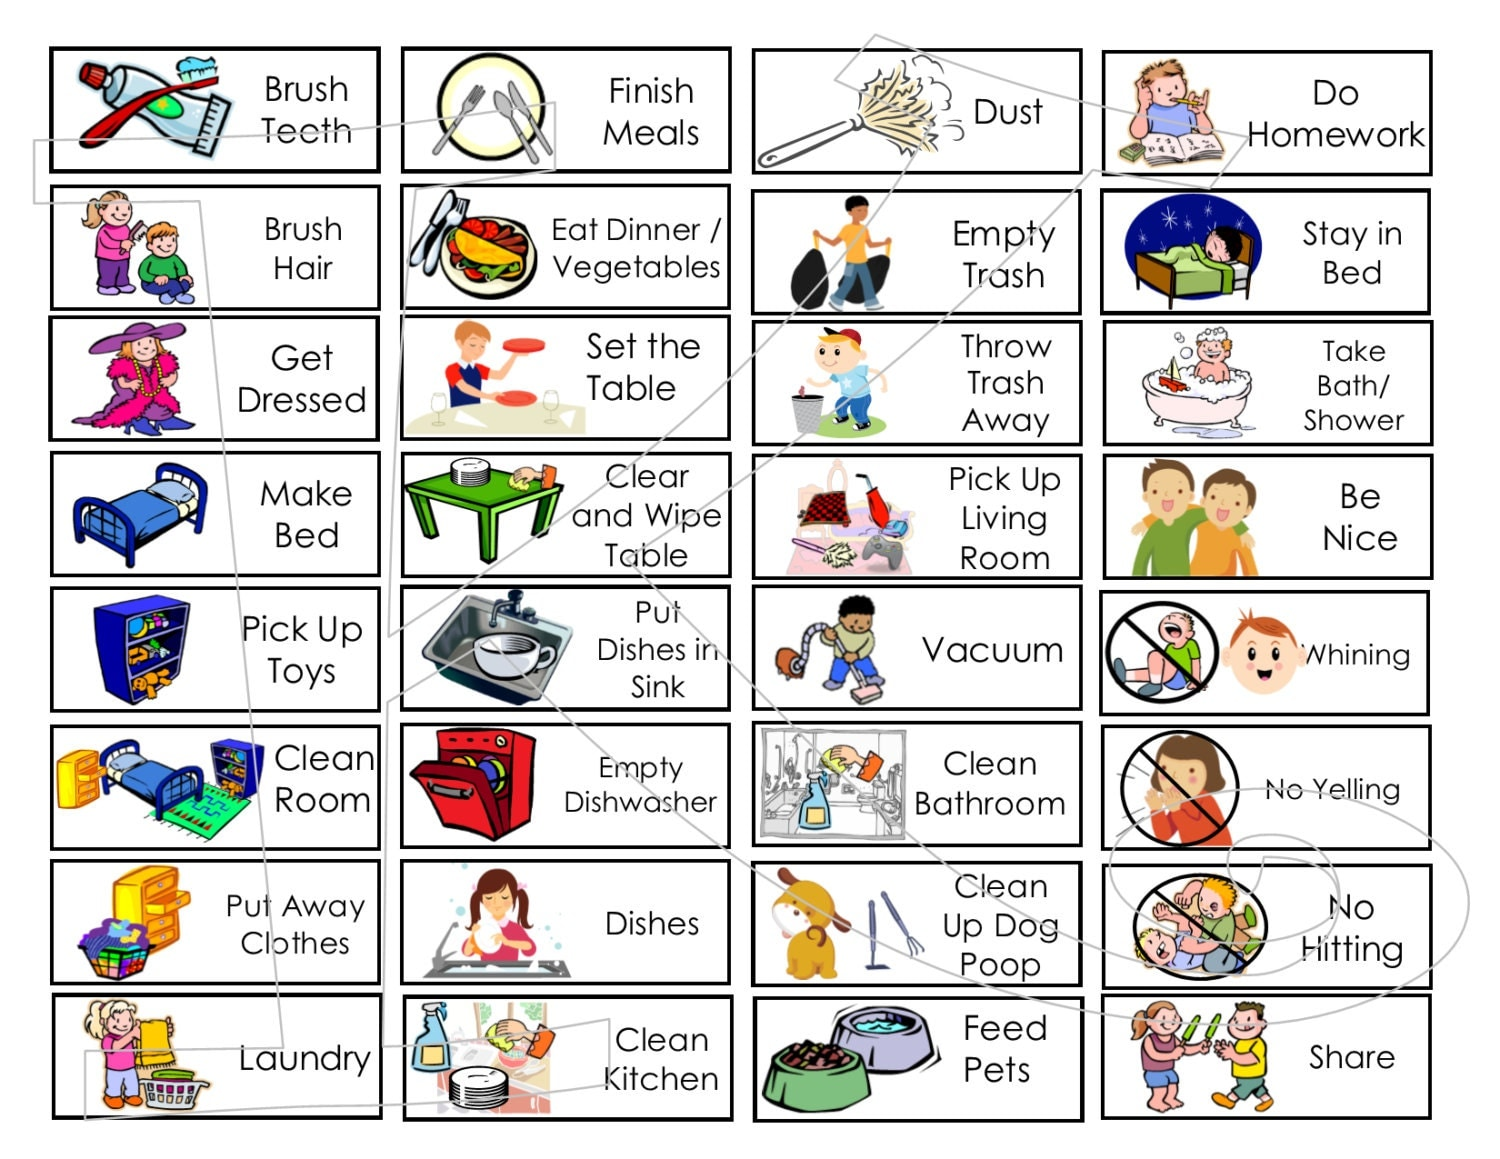 5 Extra Chore Tokens For Allowance Chore Chart Or By